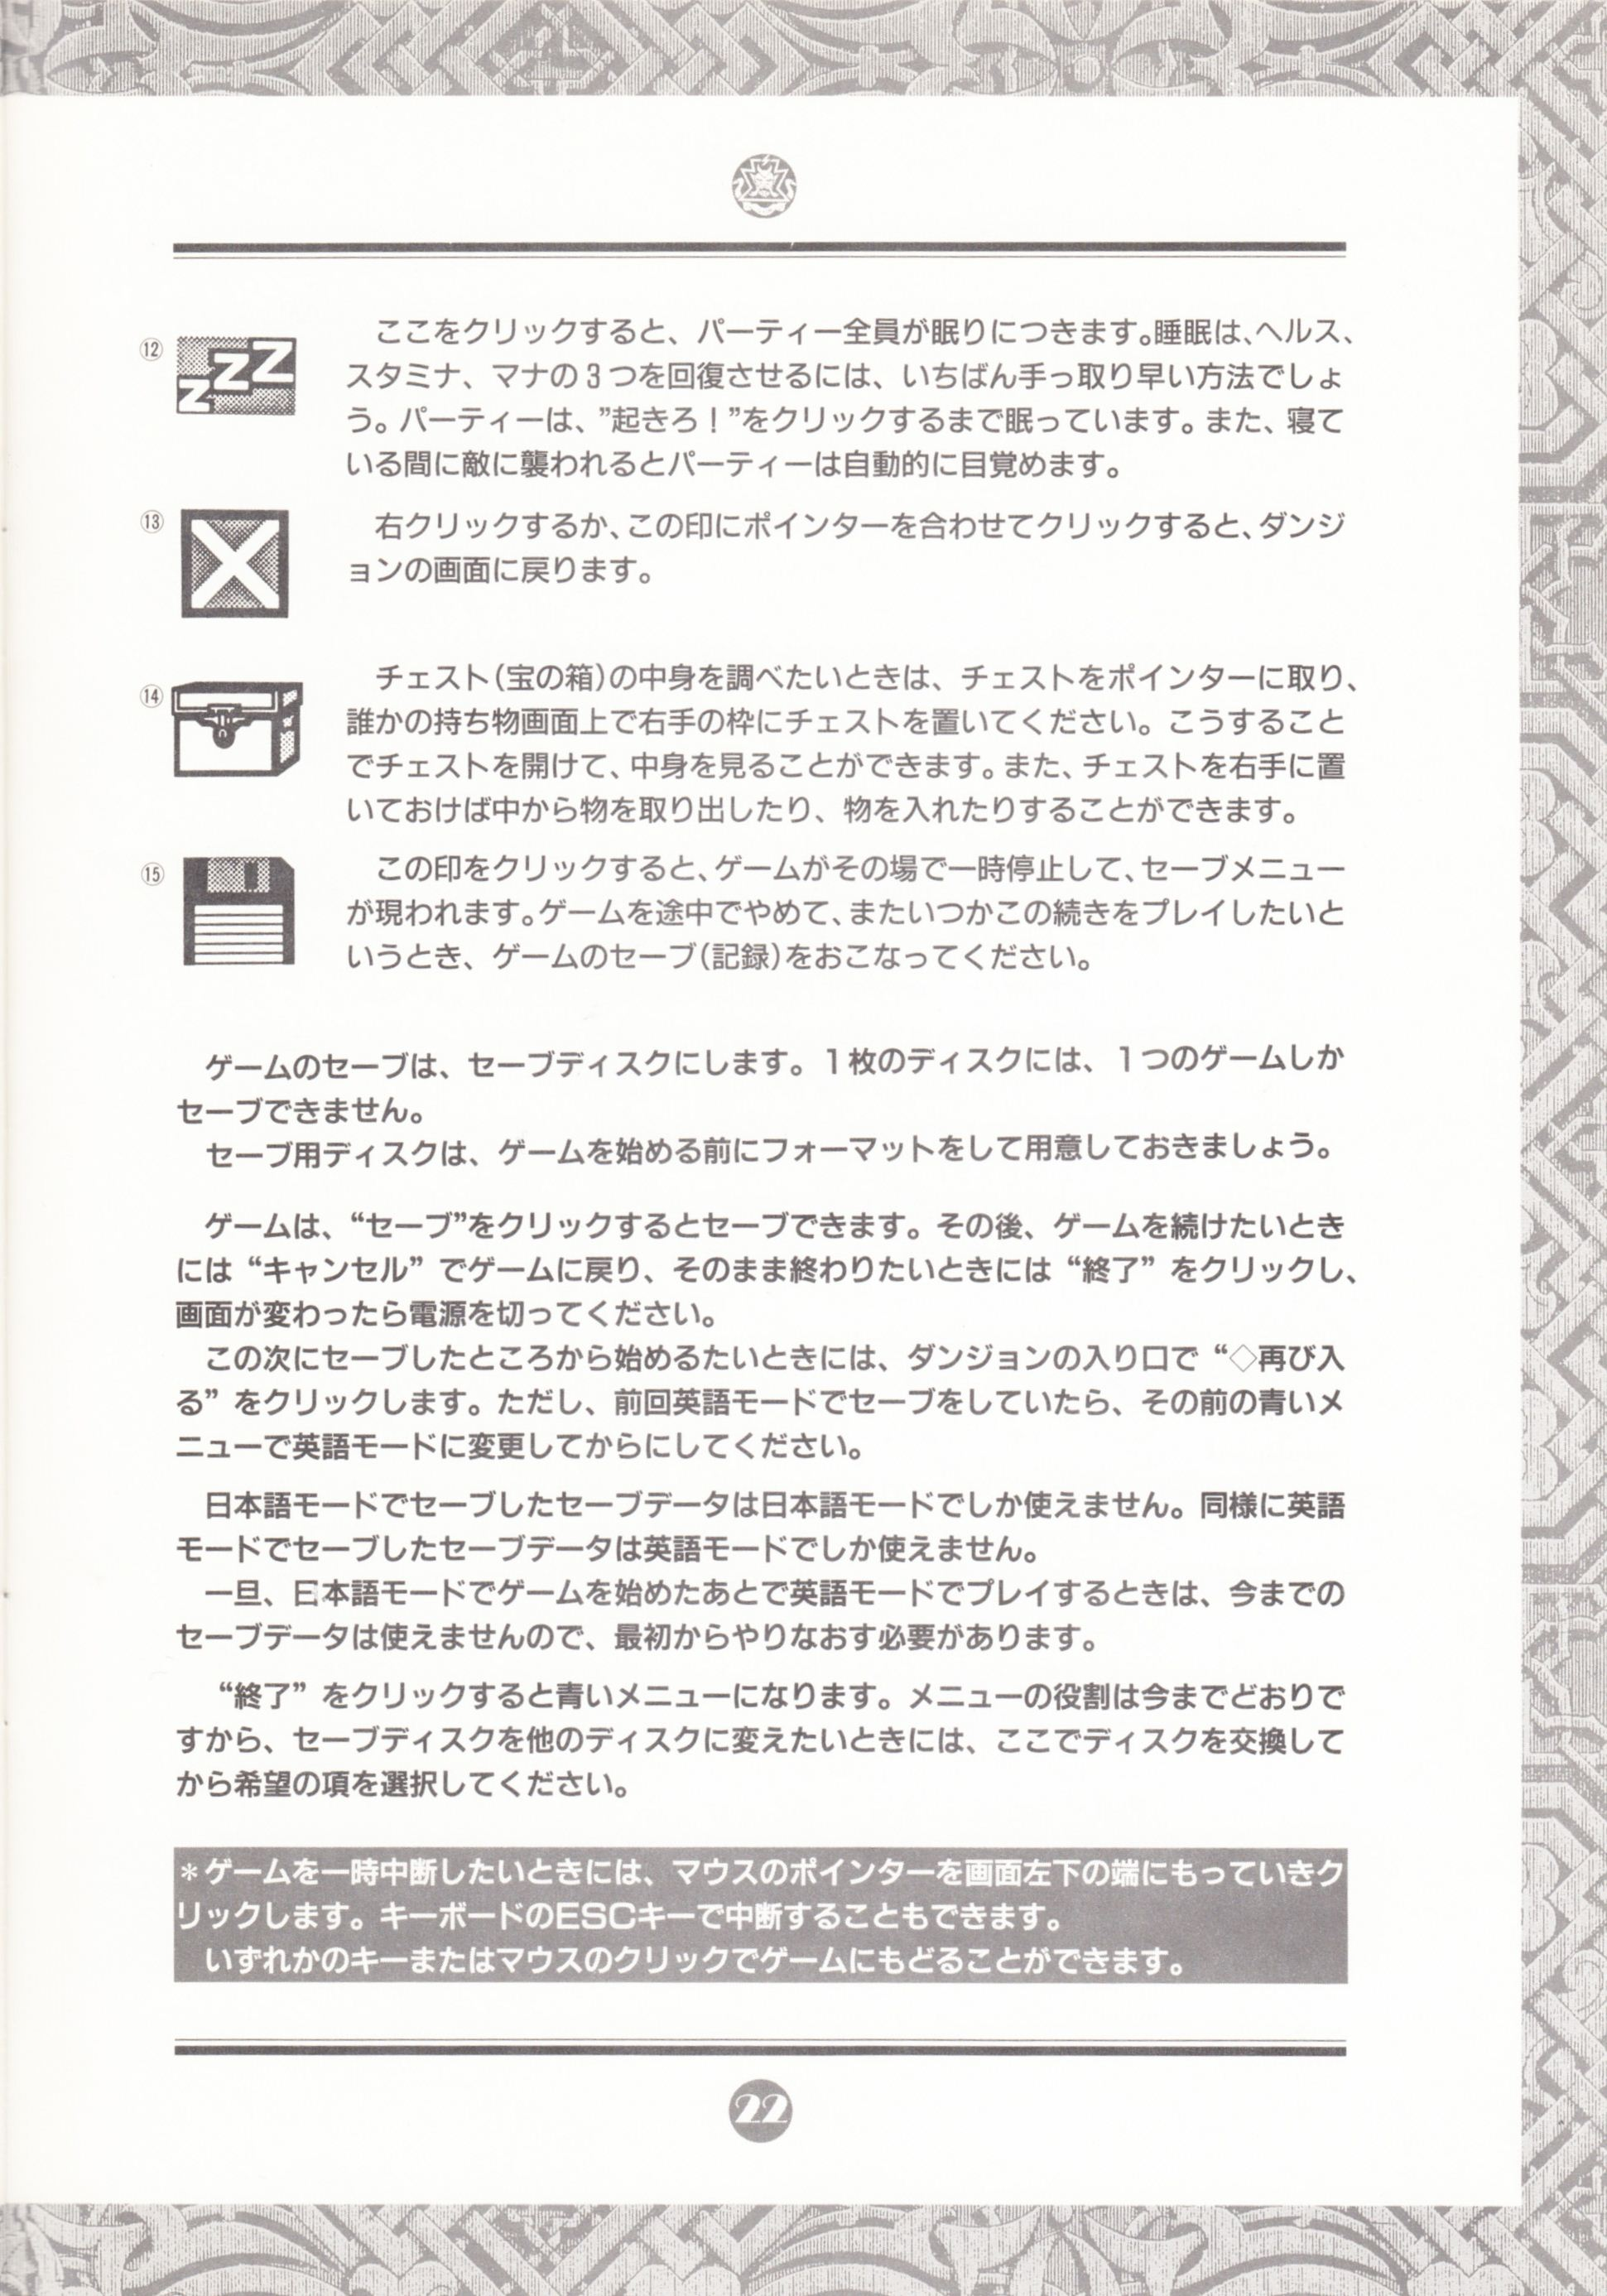 Game - Chaos Strikes Back - JP - FM Towns - An Operation Manual - Page 025 - Scan